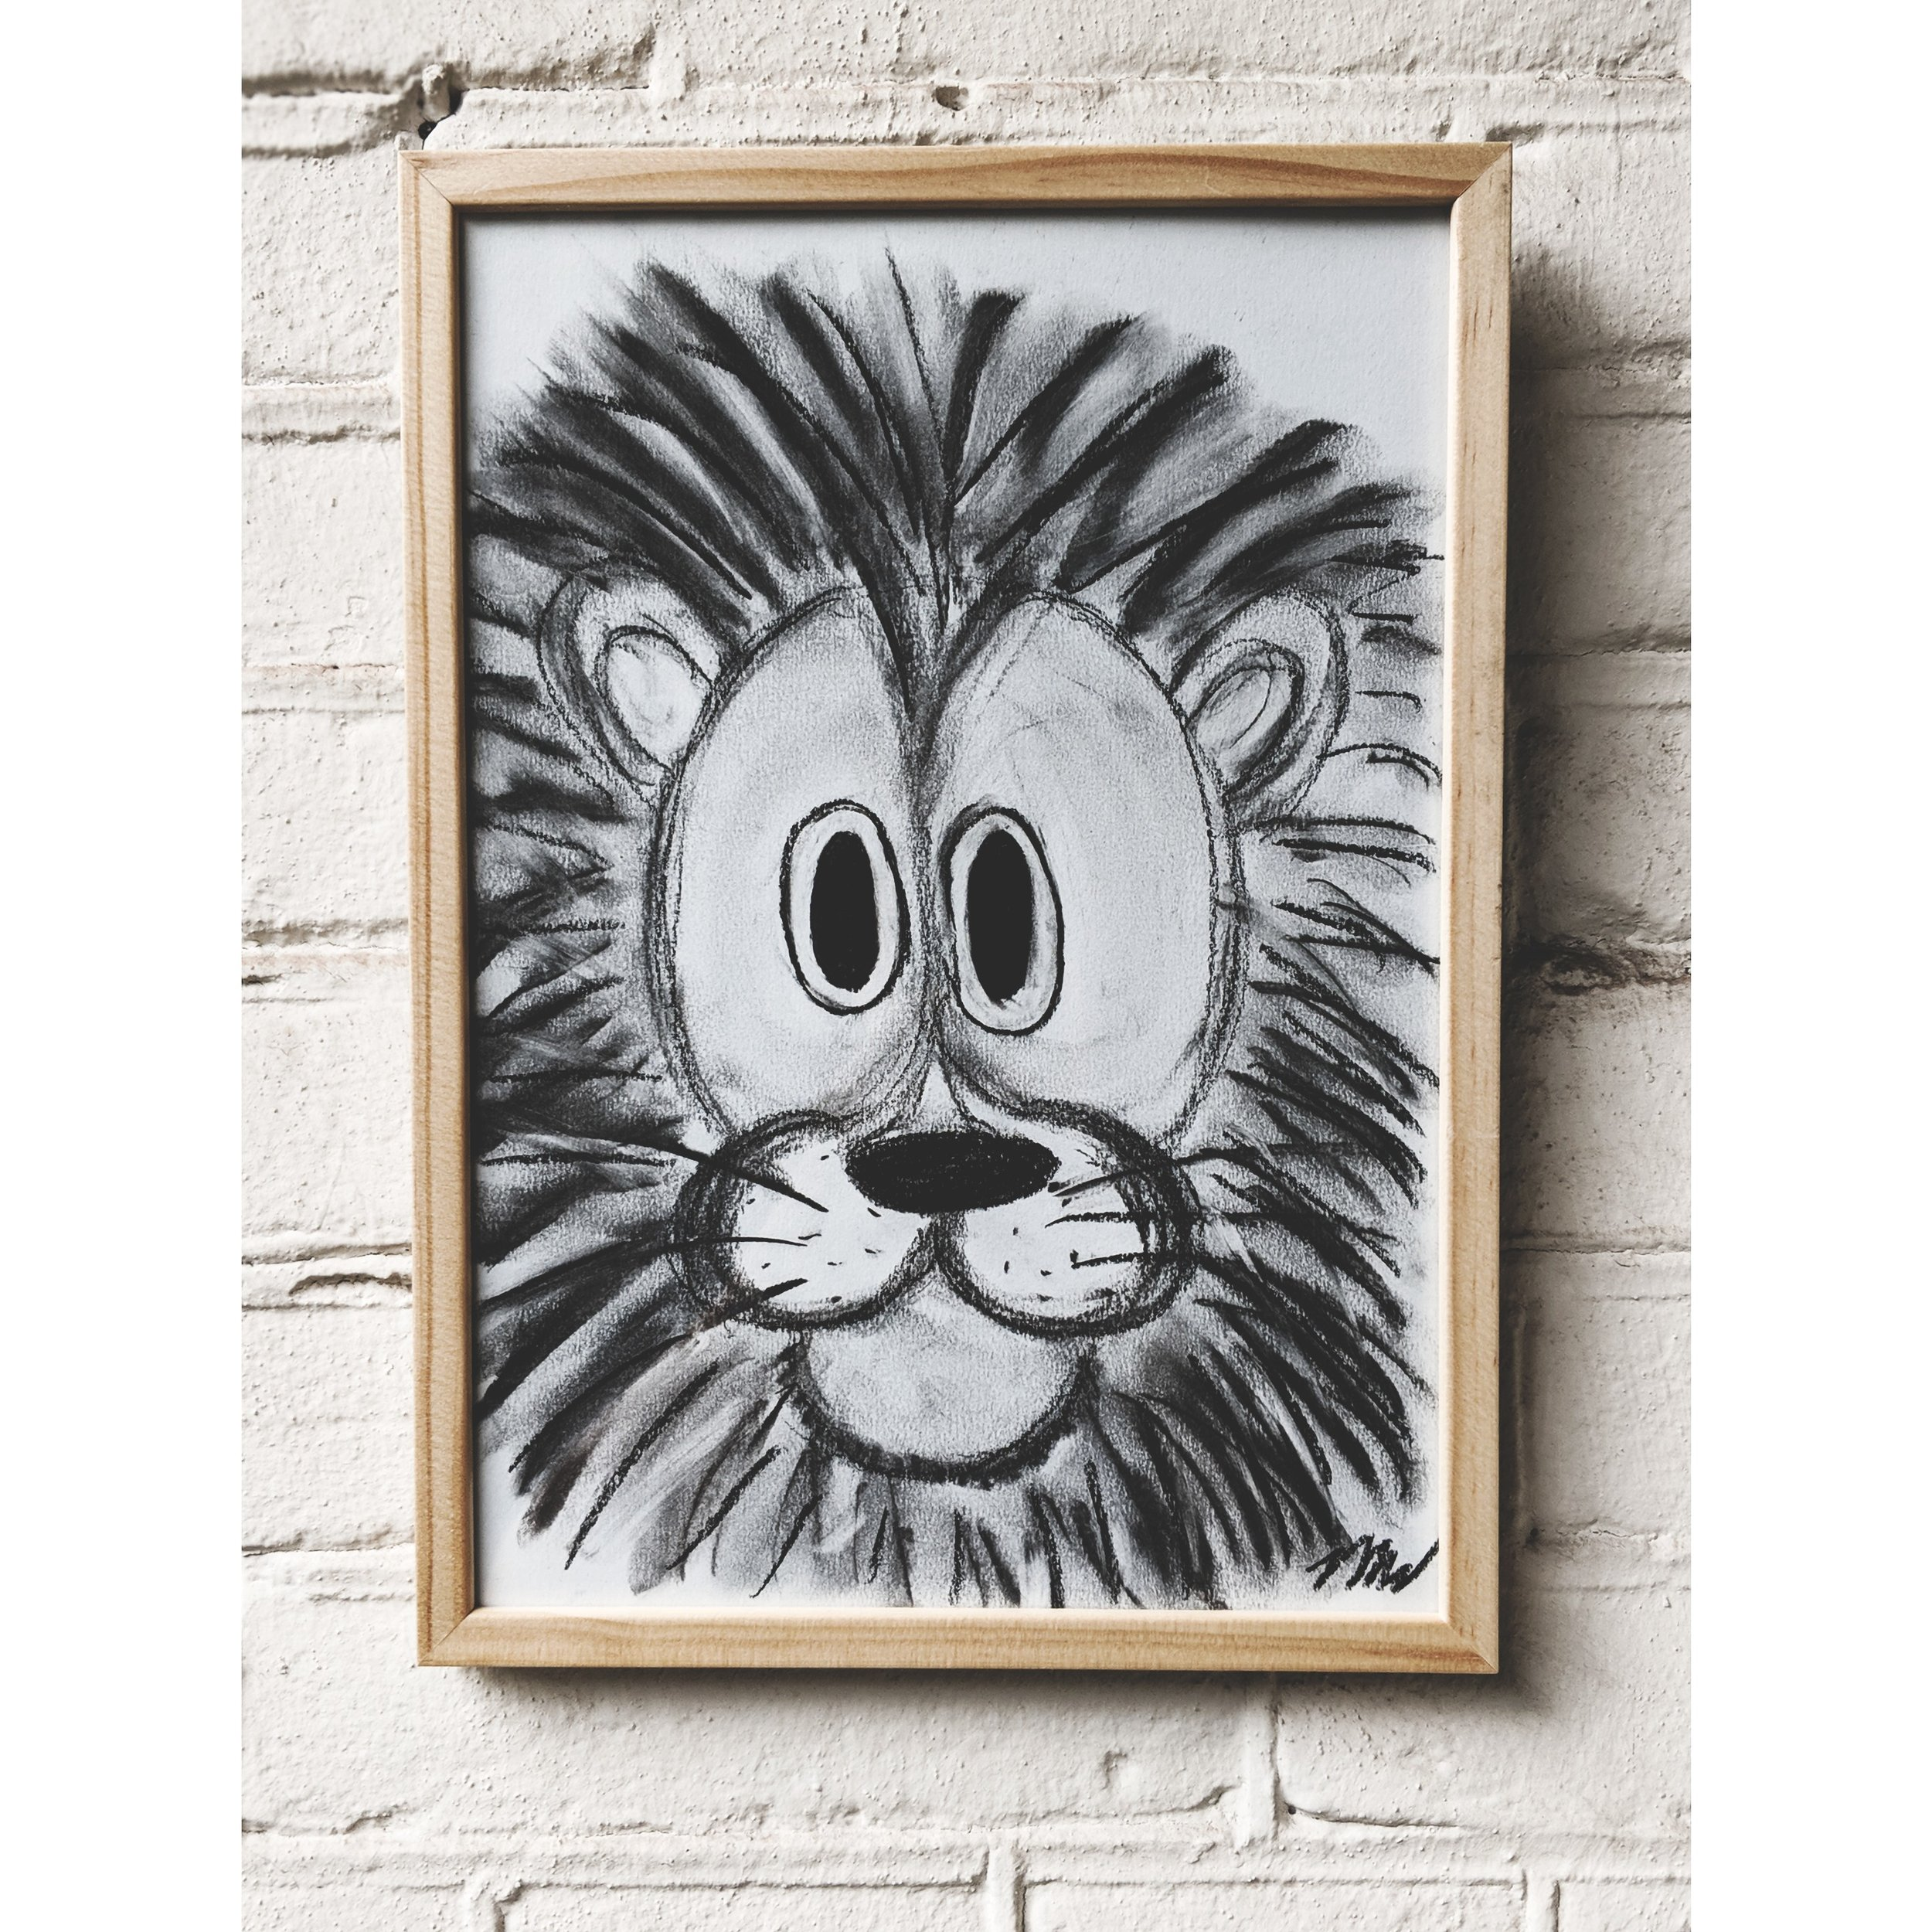 leo_the lion_art studio jet rotterdam.jpg